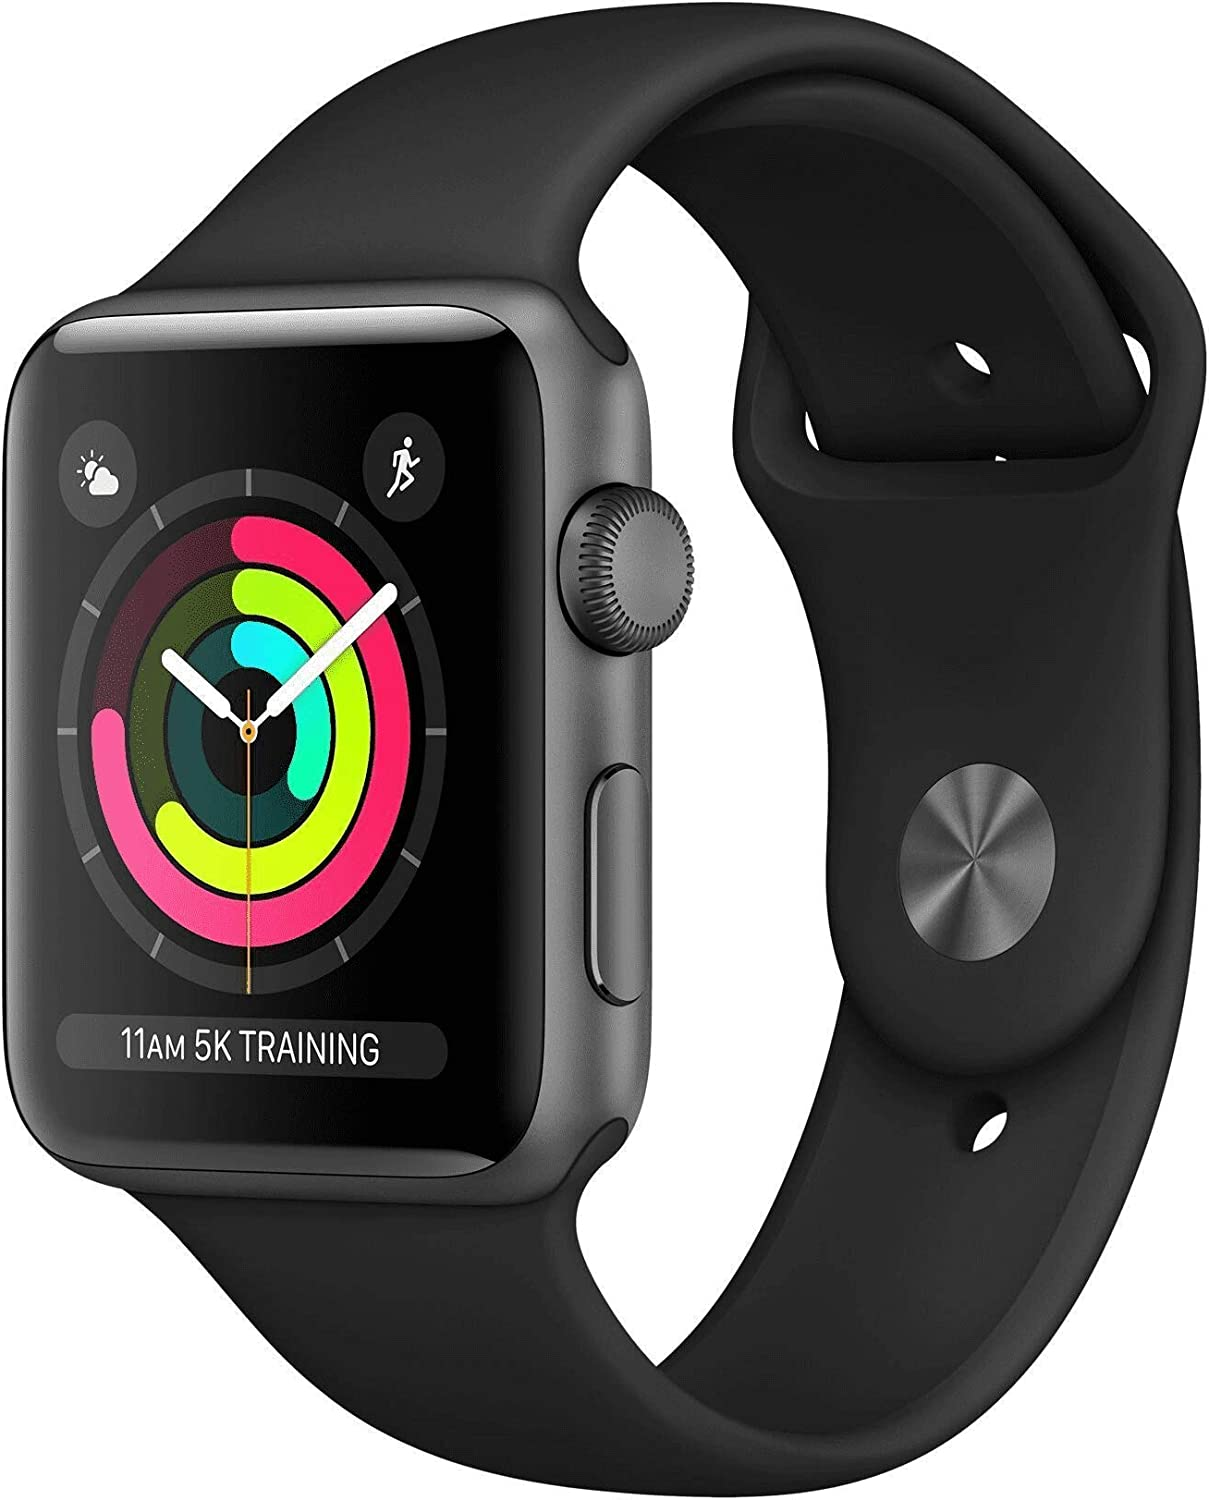 Apple Watch Series 3 (GPS, 42MM) - Space Gray Aluminum Case with Gray Sport Band (Renewed)